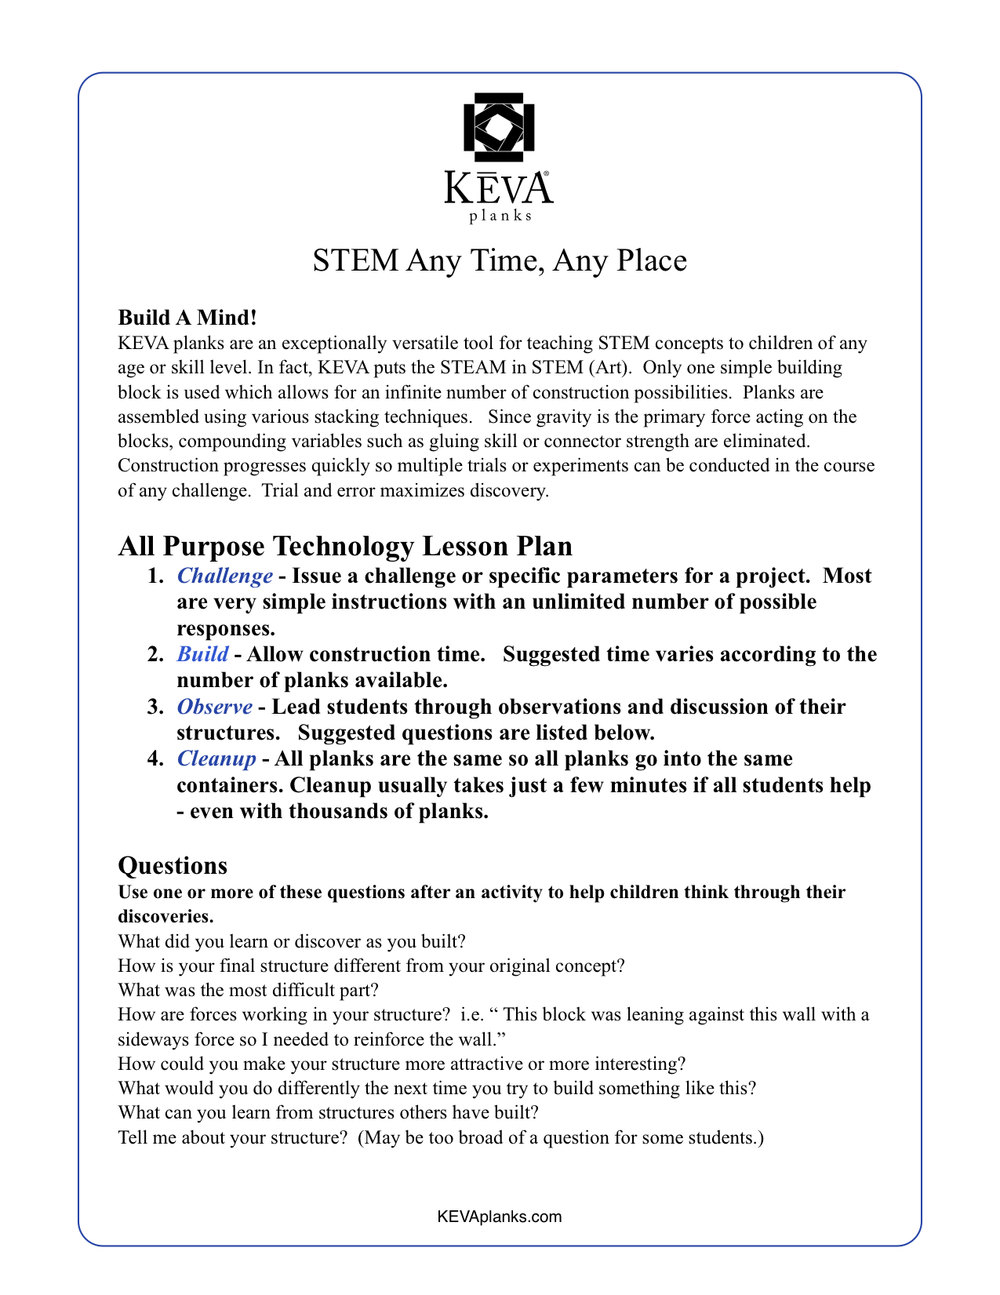 Stem keva planks - Understanding by design math unit plans ...